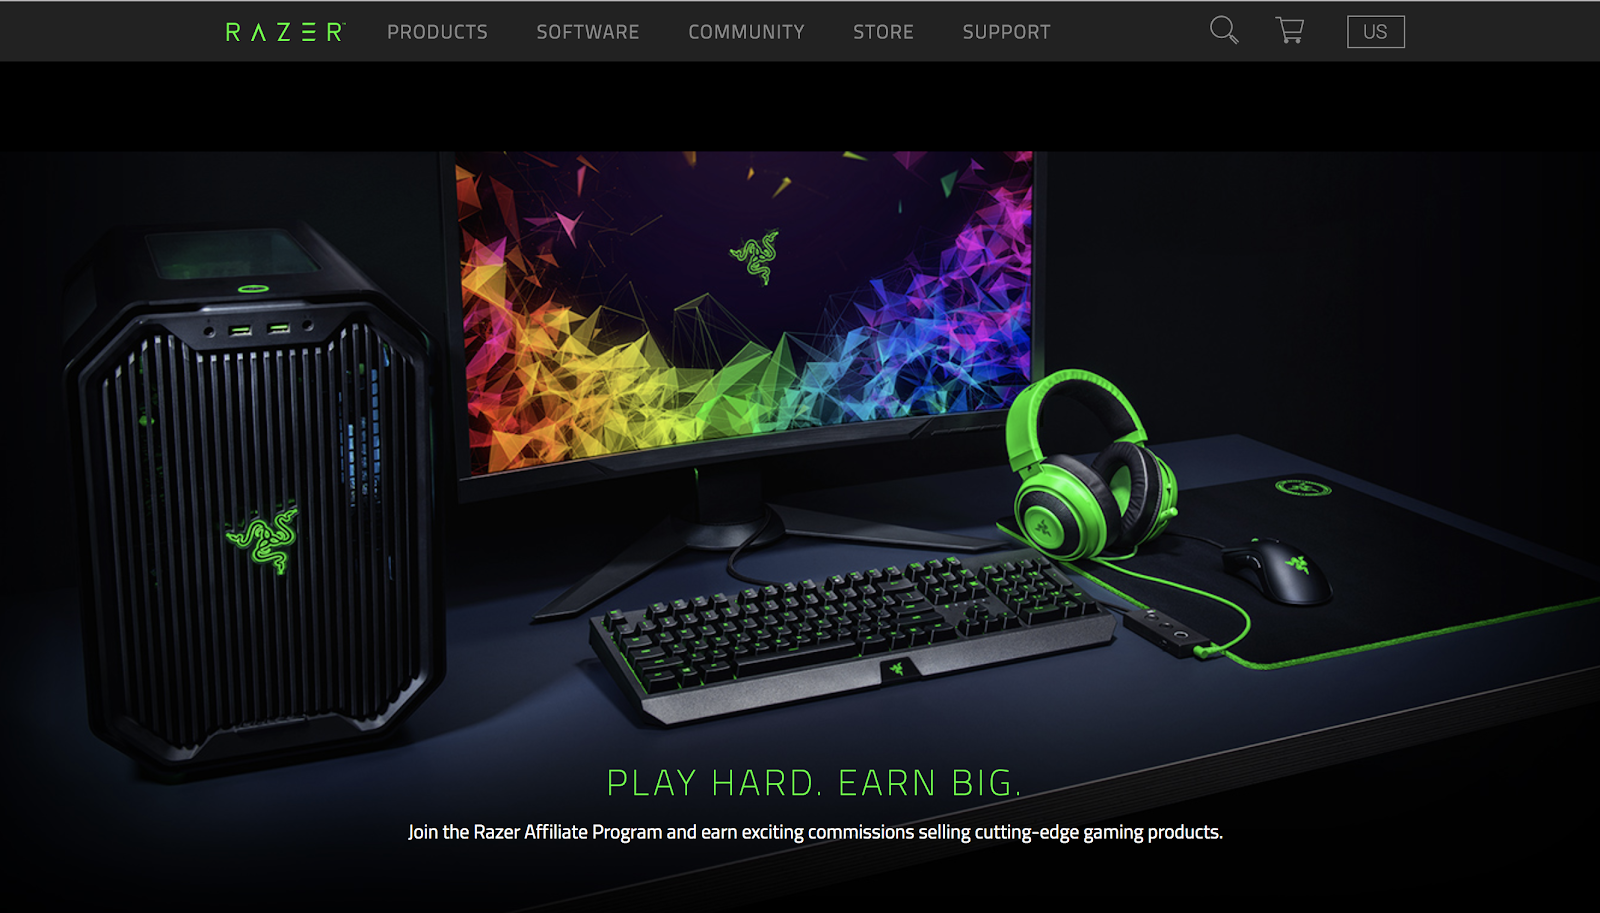 Razer Gaming Products Referral Program Screenshot Image